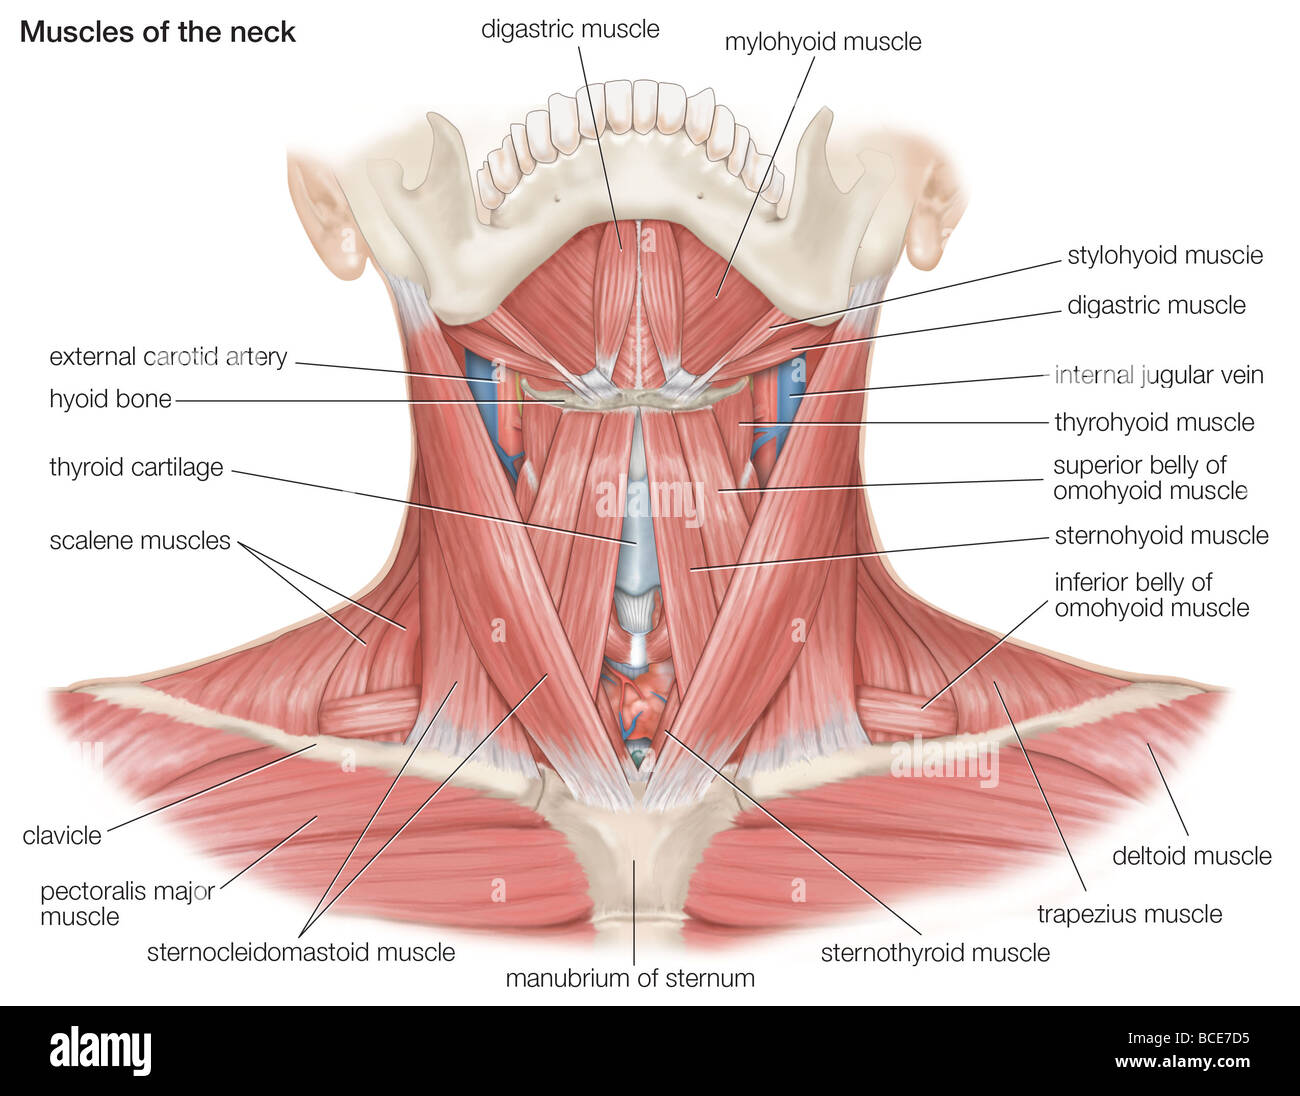 The Muscles Of The Human Neck As Well As The Major Bones And Blood